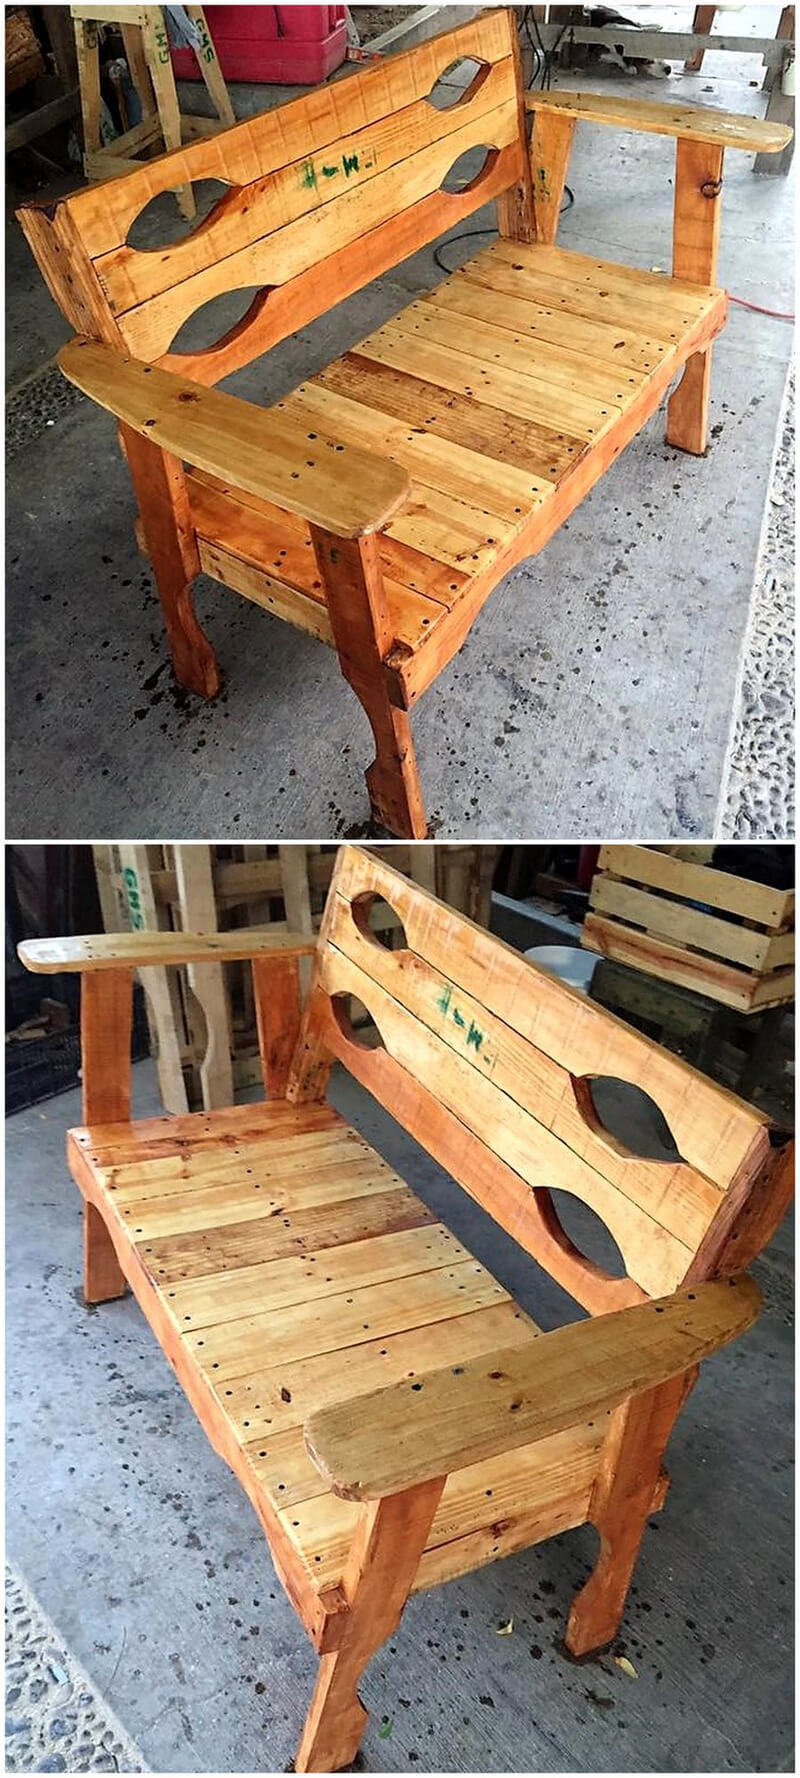 Rustic Pallet Wood Ideas and Projects | Rustic Home Decor ...